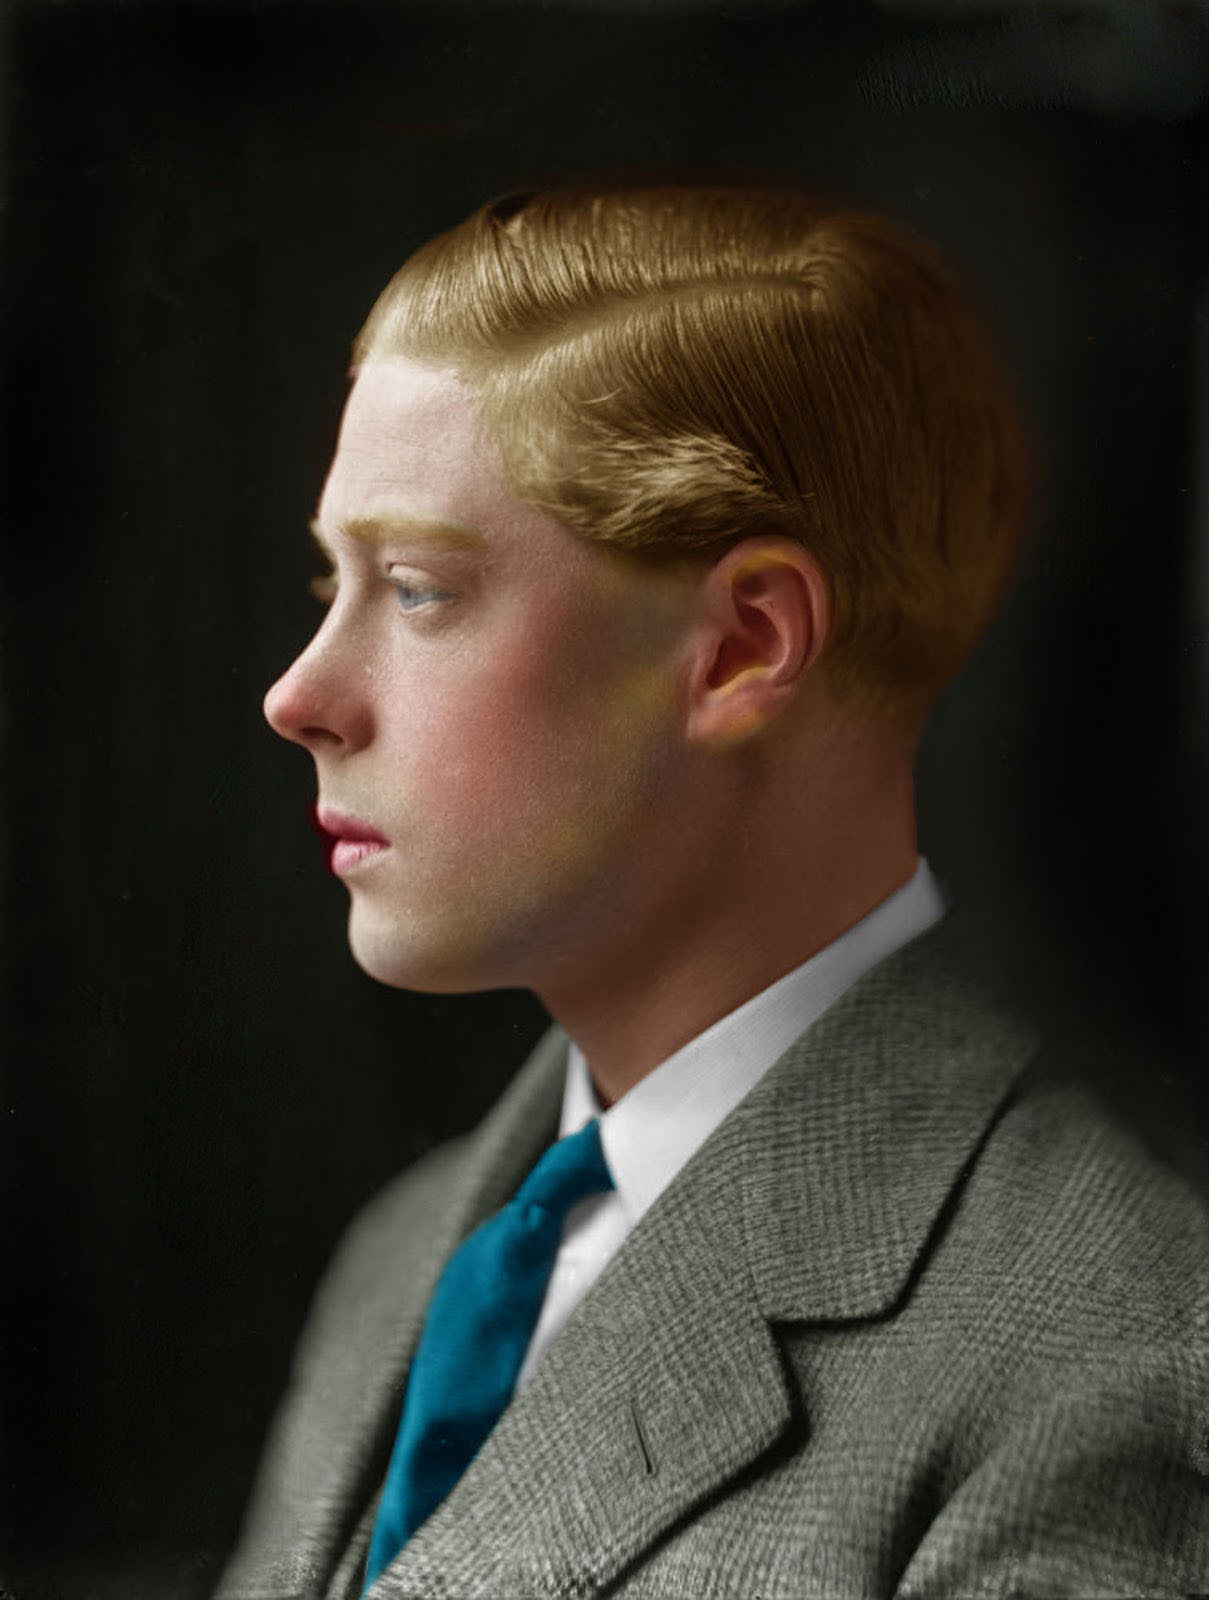 Edward viii as prince of wales by olive edis